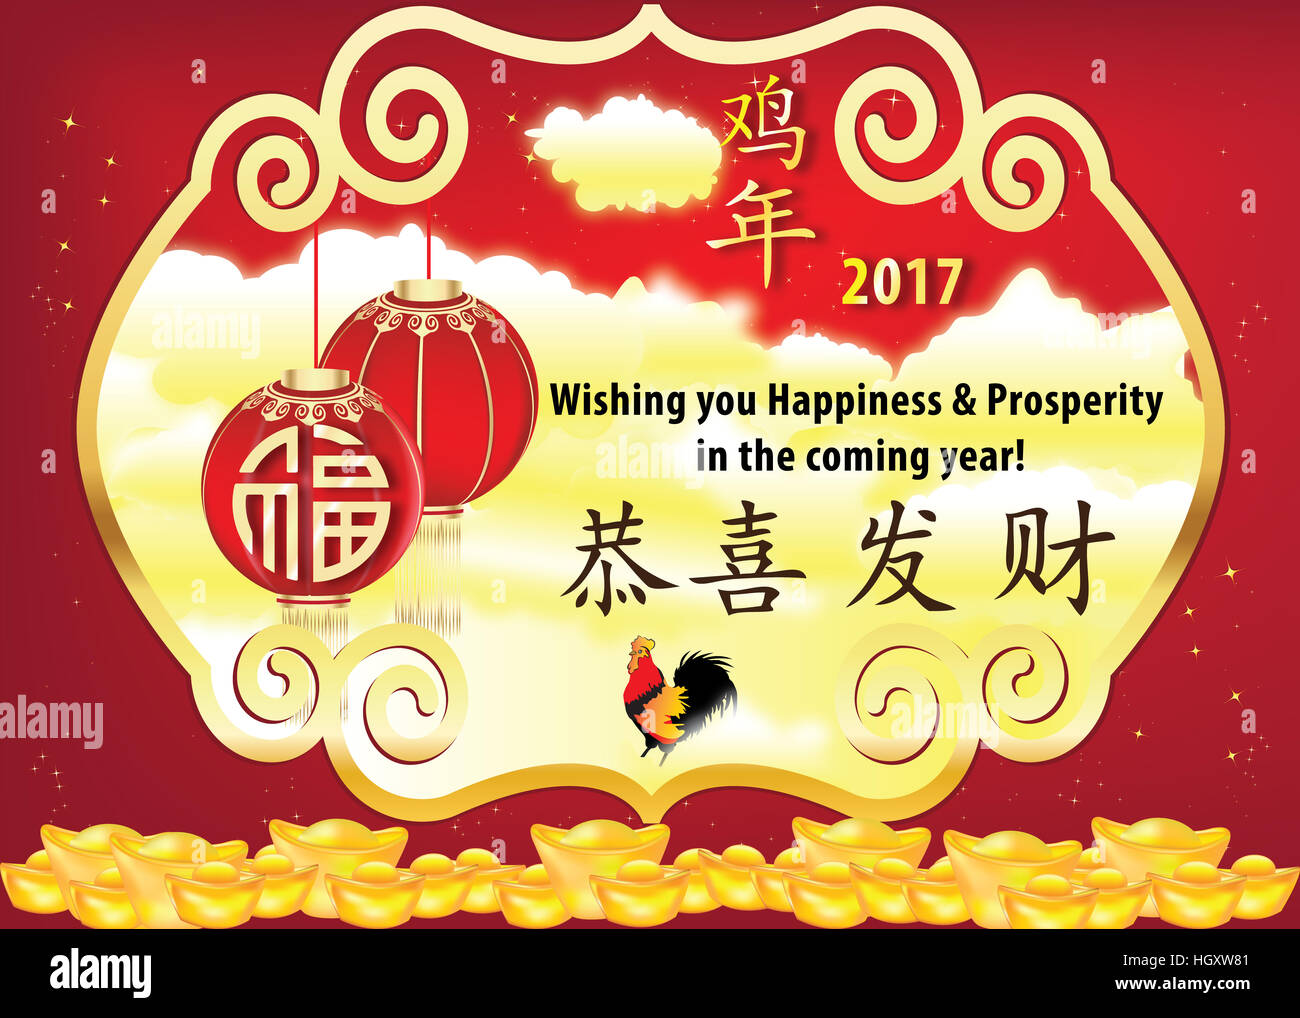 wishes for chinese new year of the rooster 2017 gong xi fa cai chinese characters printable greeting card with paper lantern